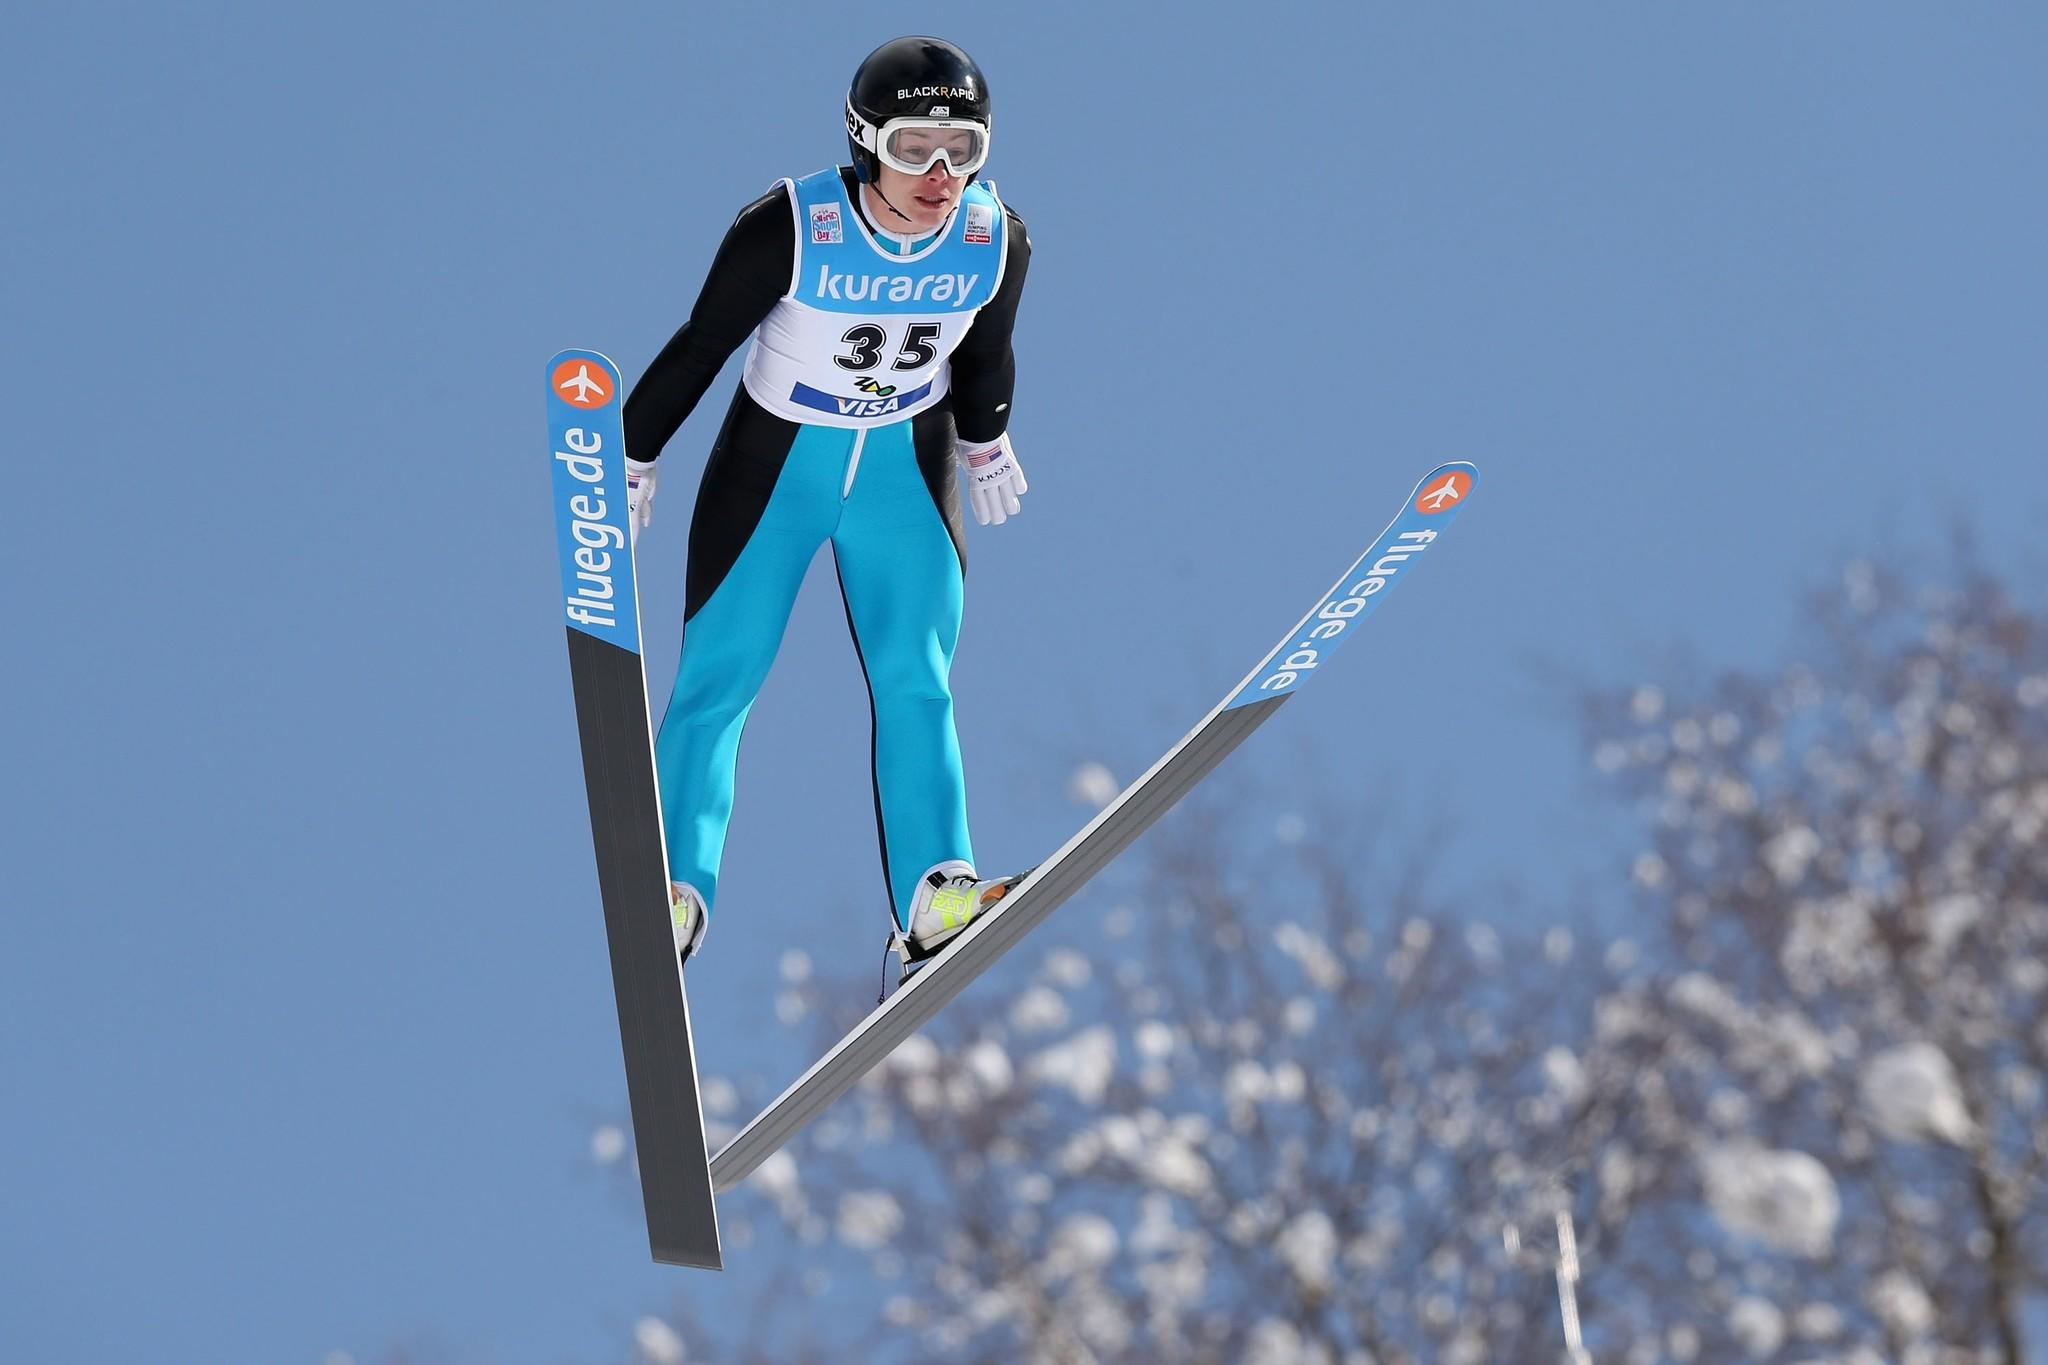 Lindsey Van competes in the Normal Hill Individual 1st round during the FIS Women's Ski Jumping World Cup Zao at Zao Jump Stadium. (Chris McGrath/Getty Photo)